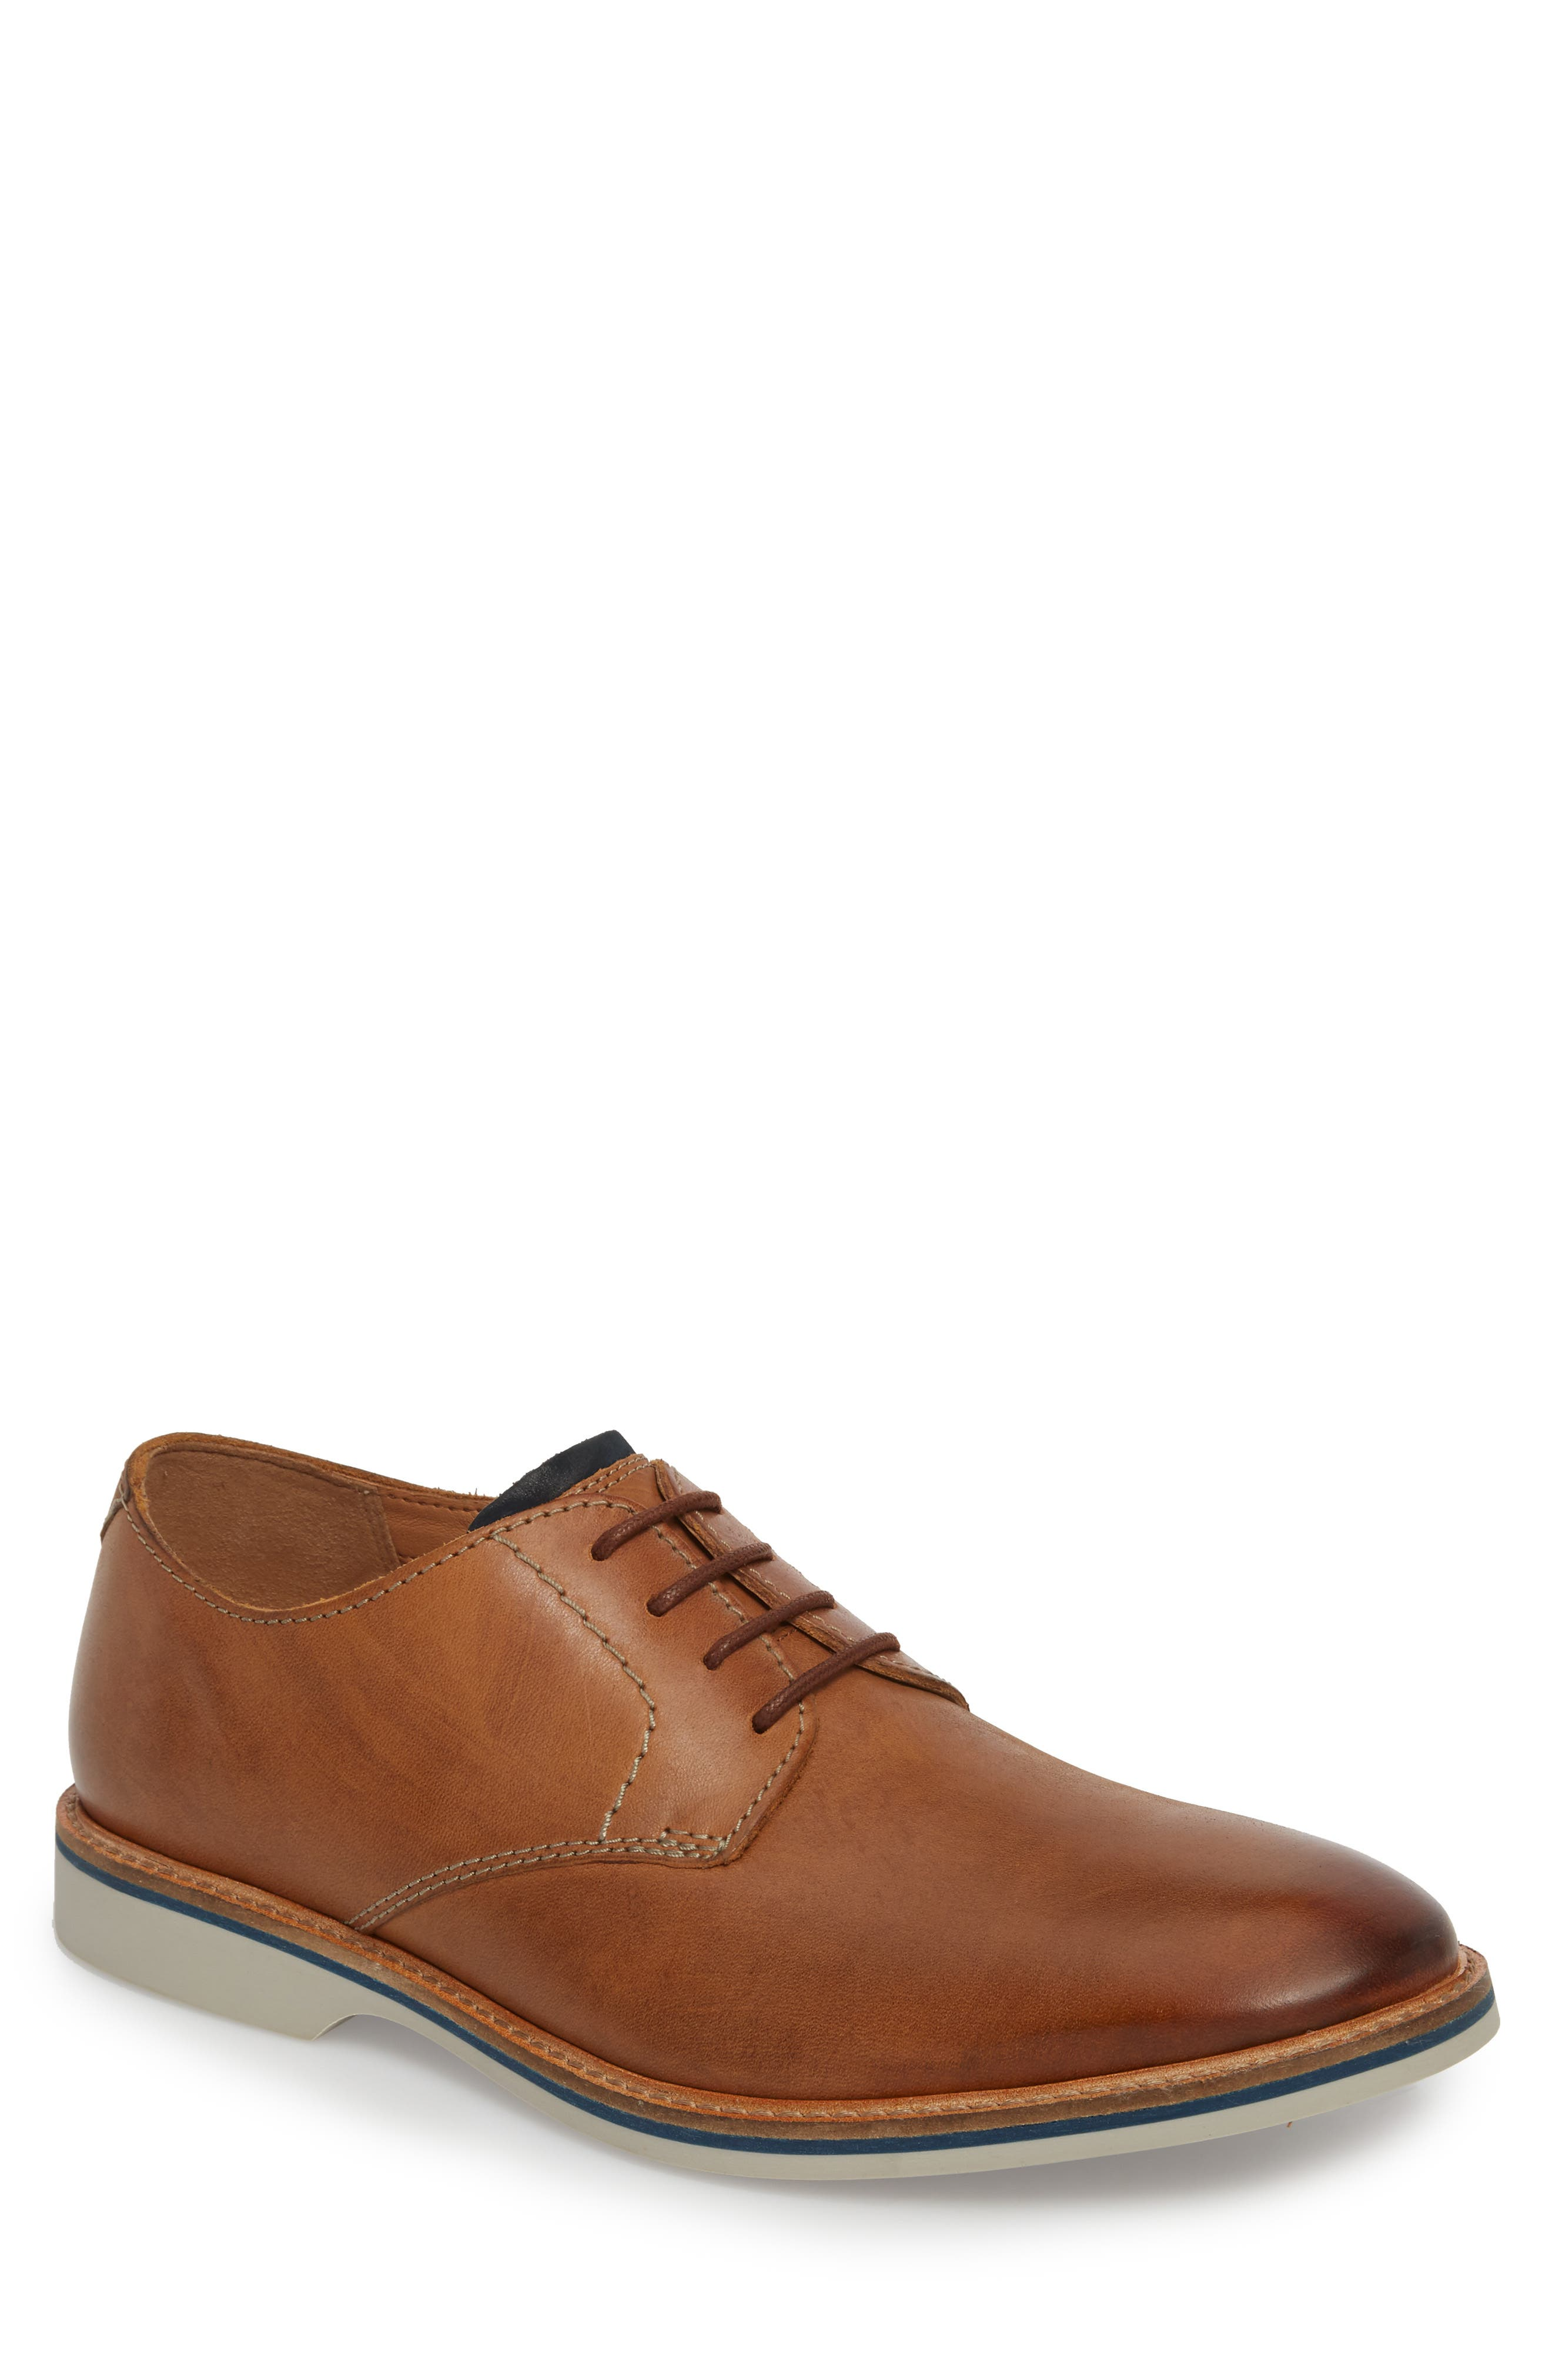 Main Image - Clarks® Atticus Plain Toe Derby (Men)